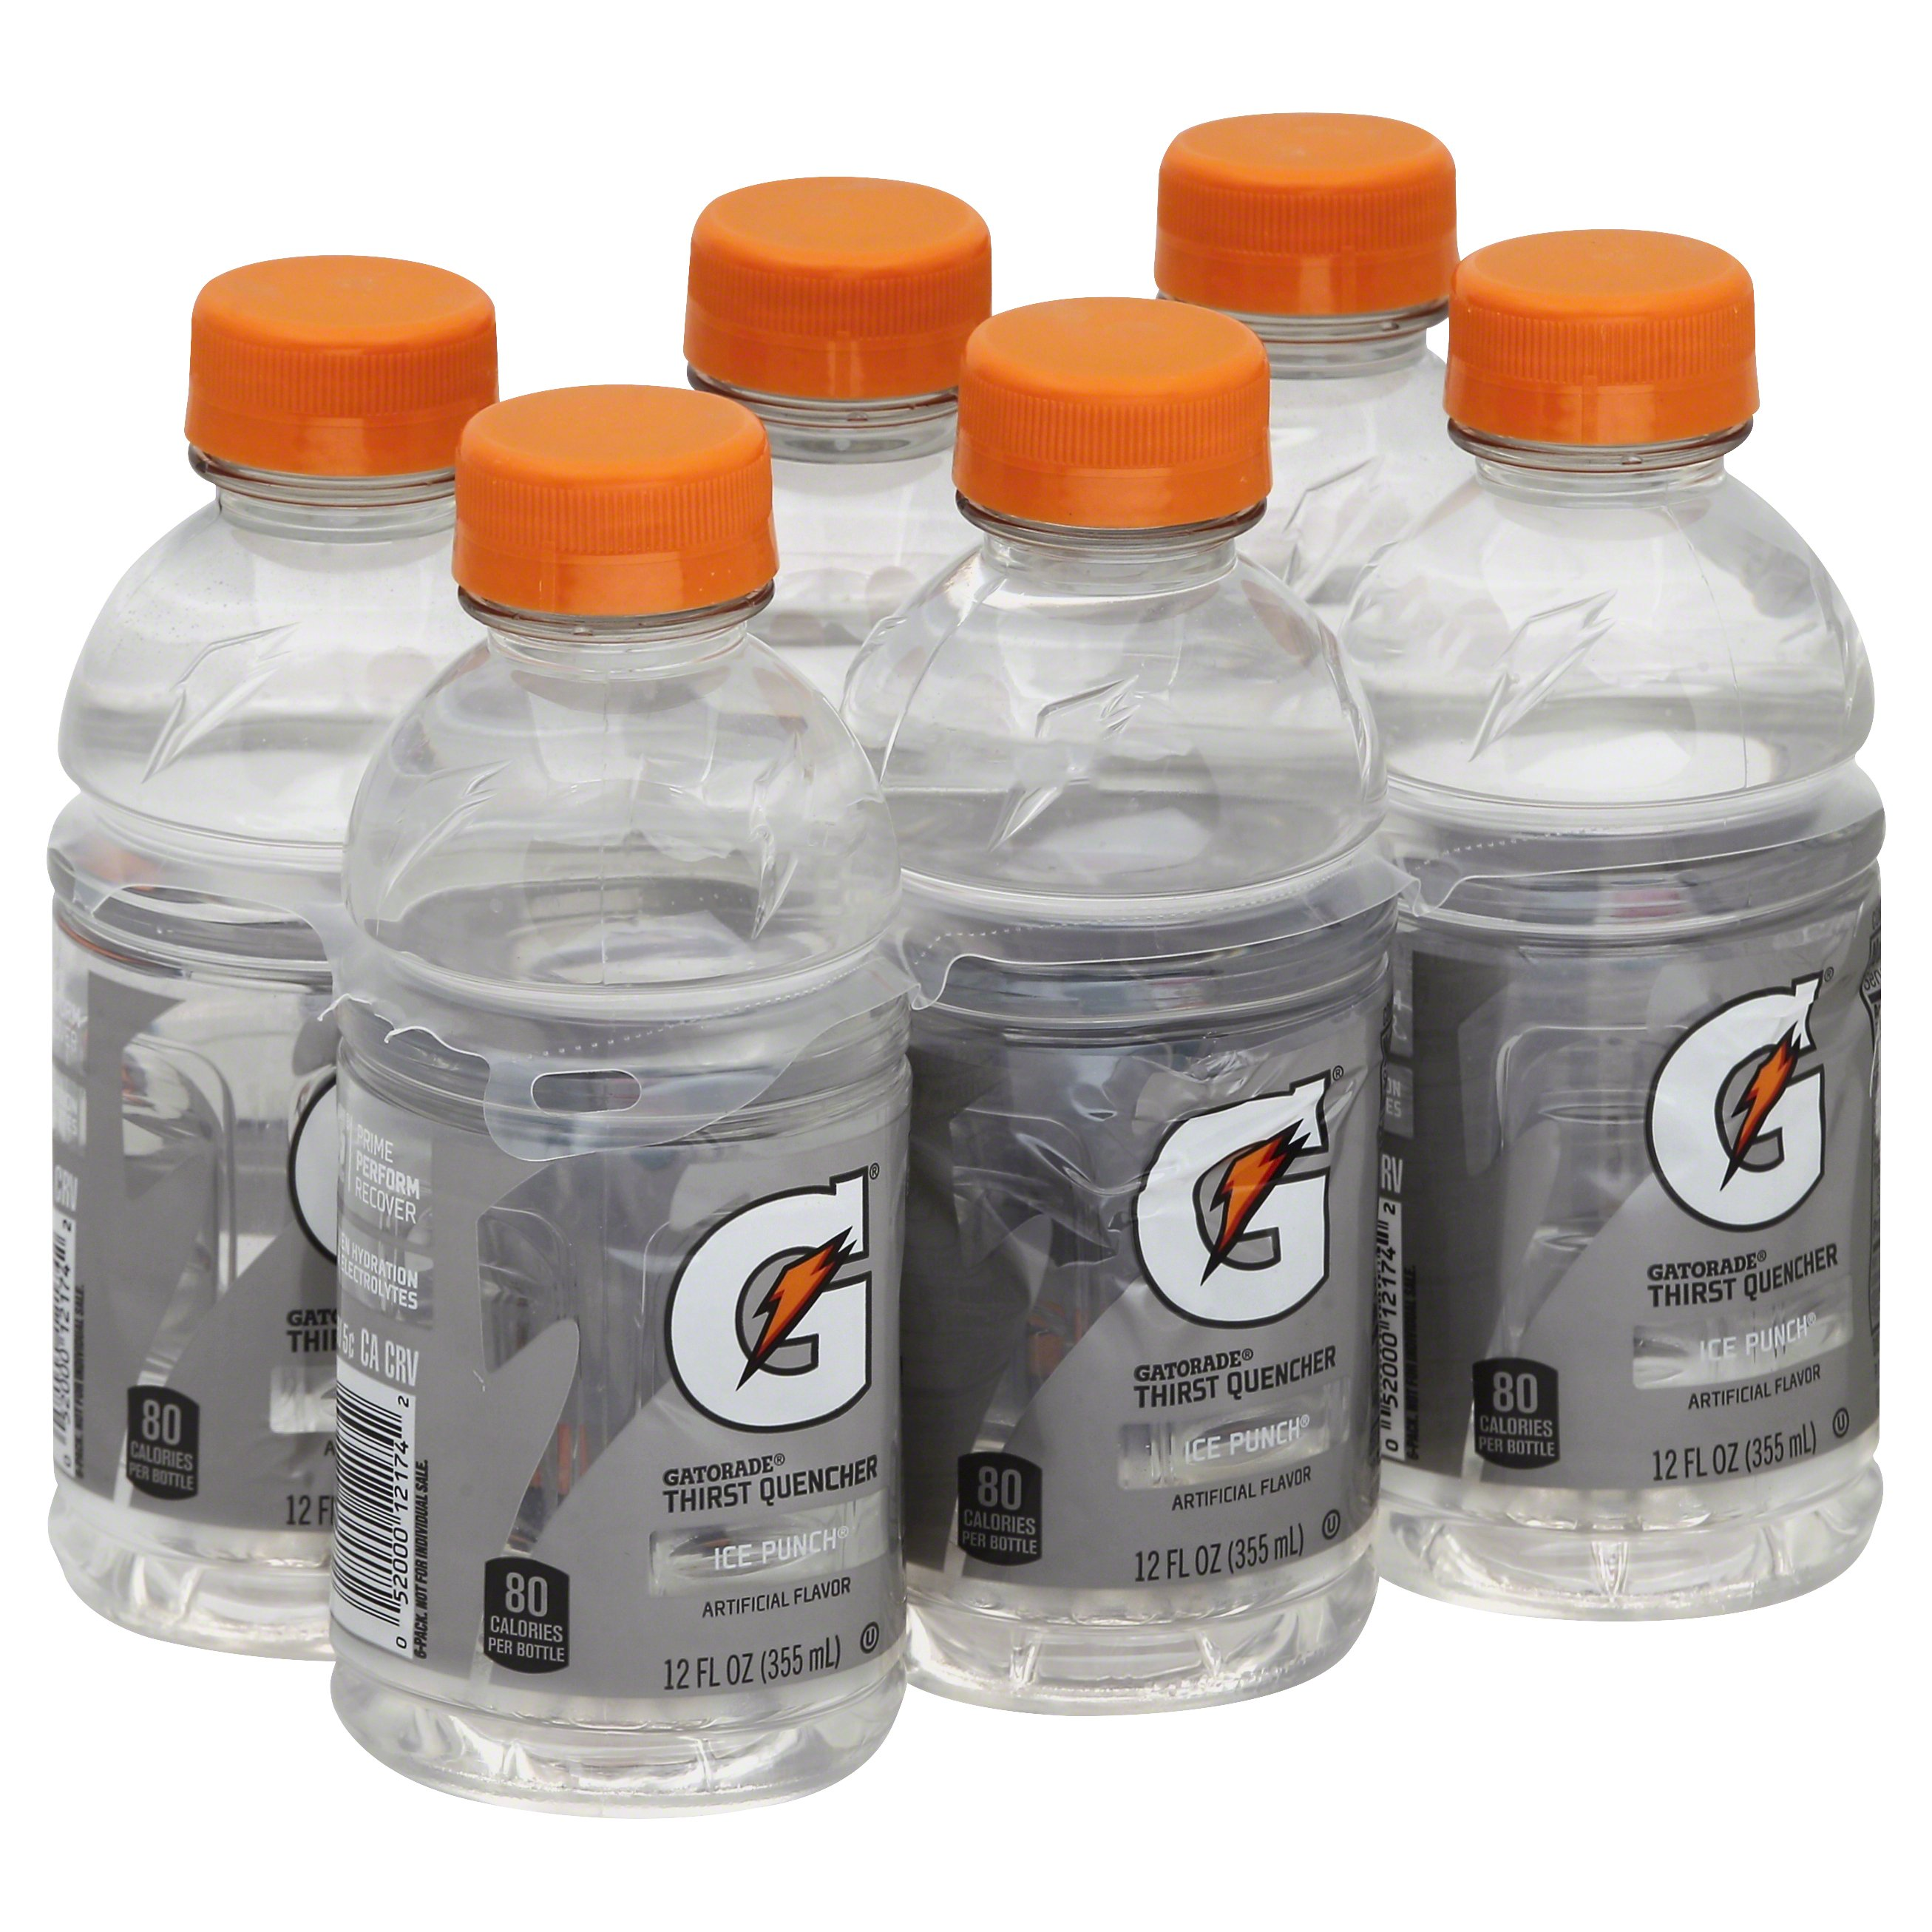 Gatorade Perform 02 Ice Punch Sports Drink 72OZ 4-Pack